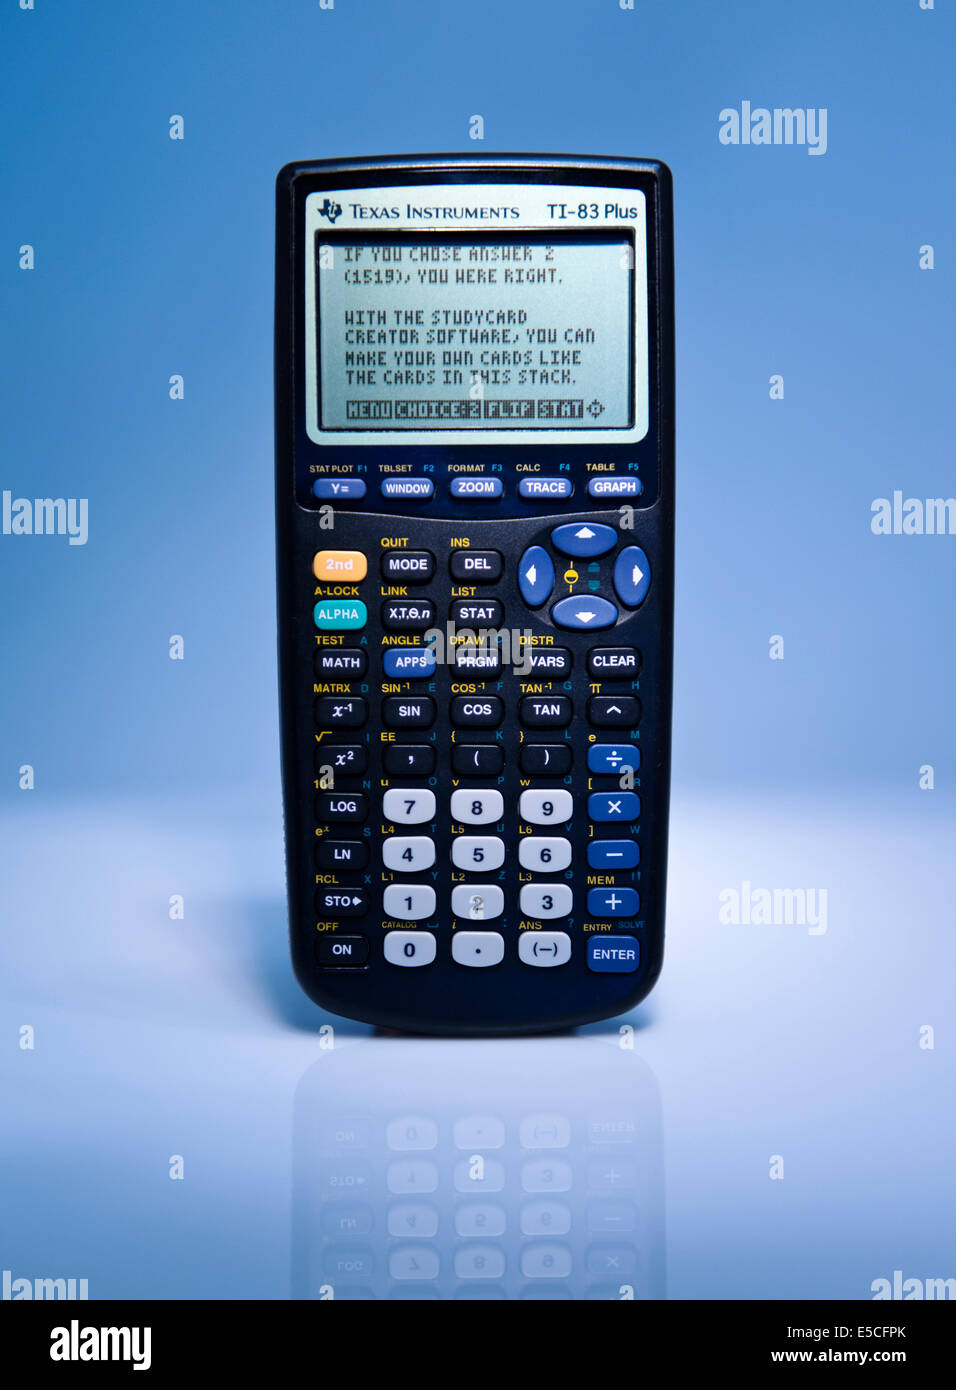 Scientific Calculator Stock Photos Circuitry Of An Electronic Royalty Free Photography Detail Front View A Texas Instruments Ti 83 Plus Graphing